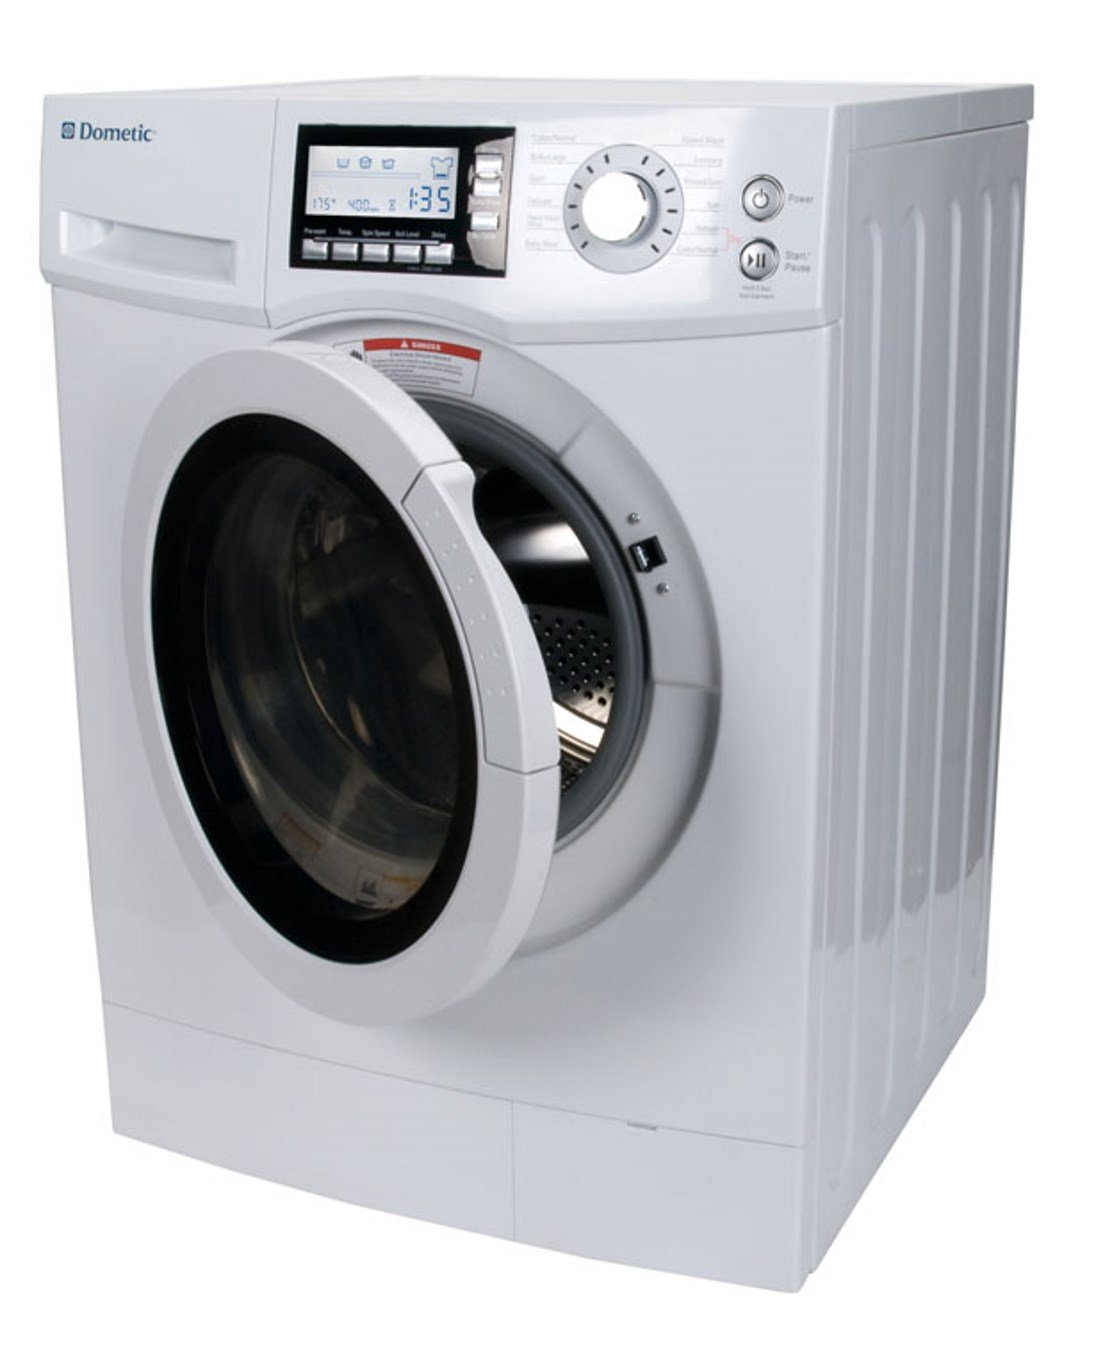 Lg all in one washer and dryer reviews - Amazon Com Dometic Wdcvlw White Ventless Washer Dryer Combo Automotive